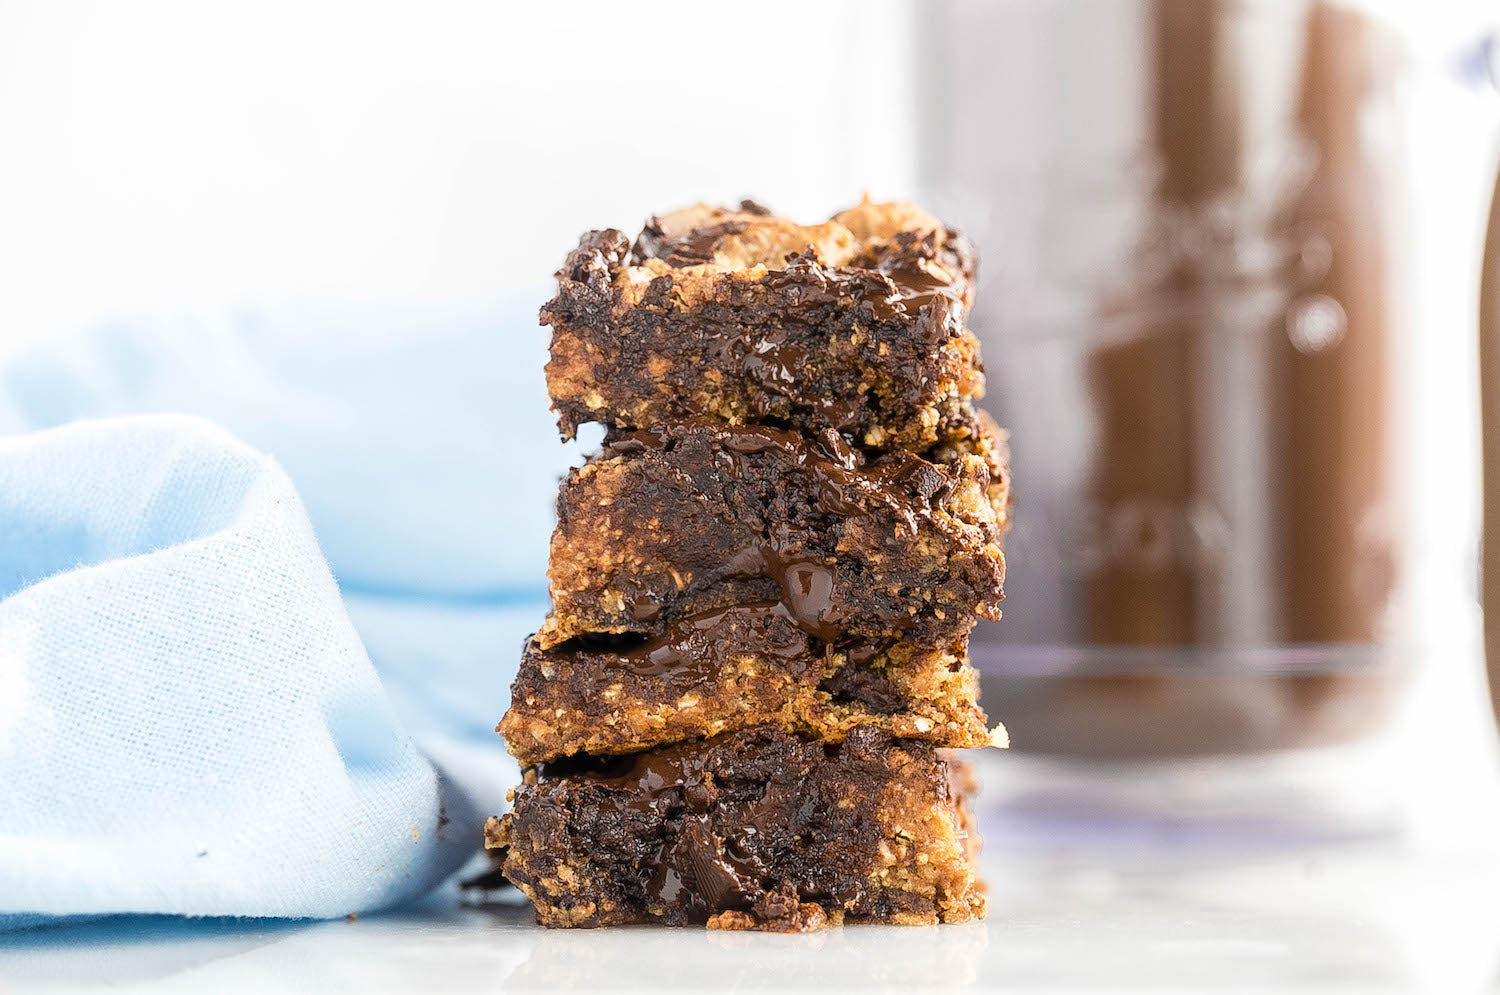 Almond Butter & Oat Chocolate Chip Bars - $6